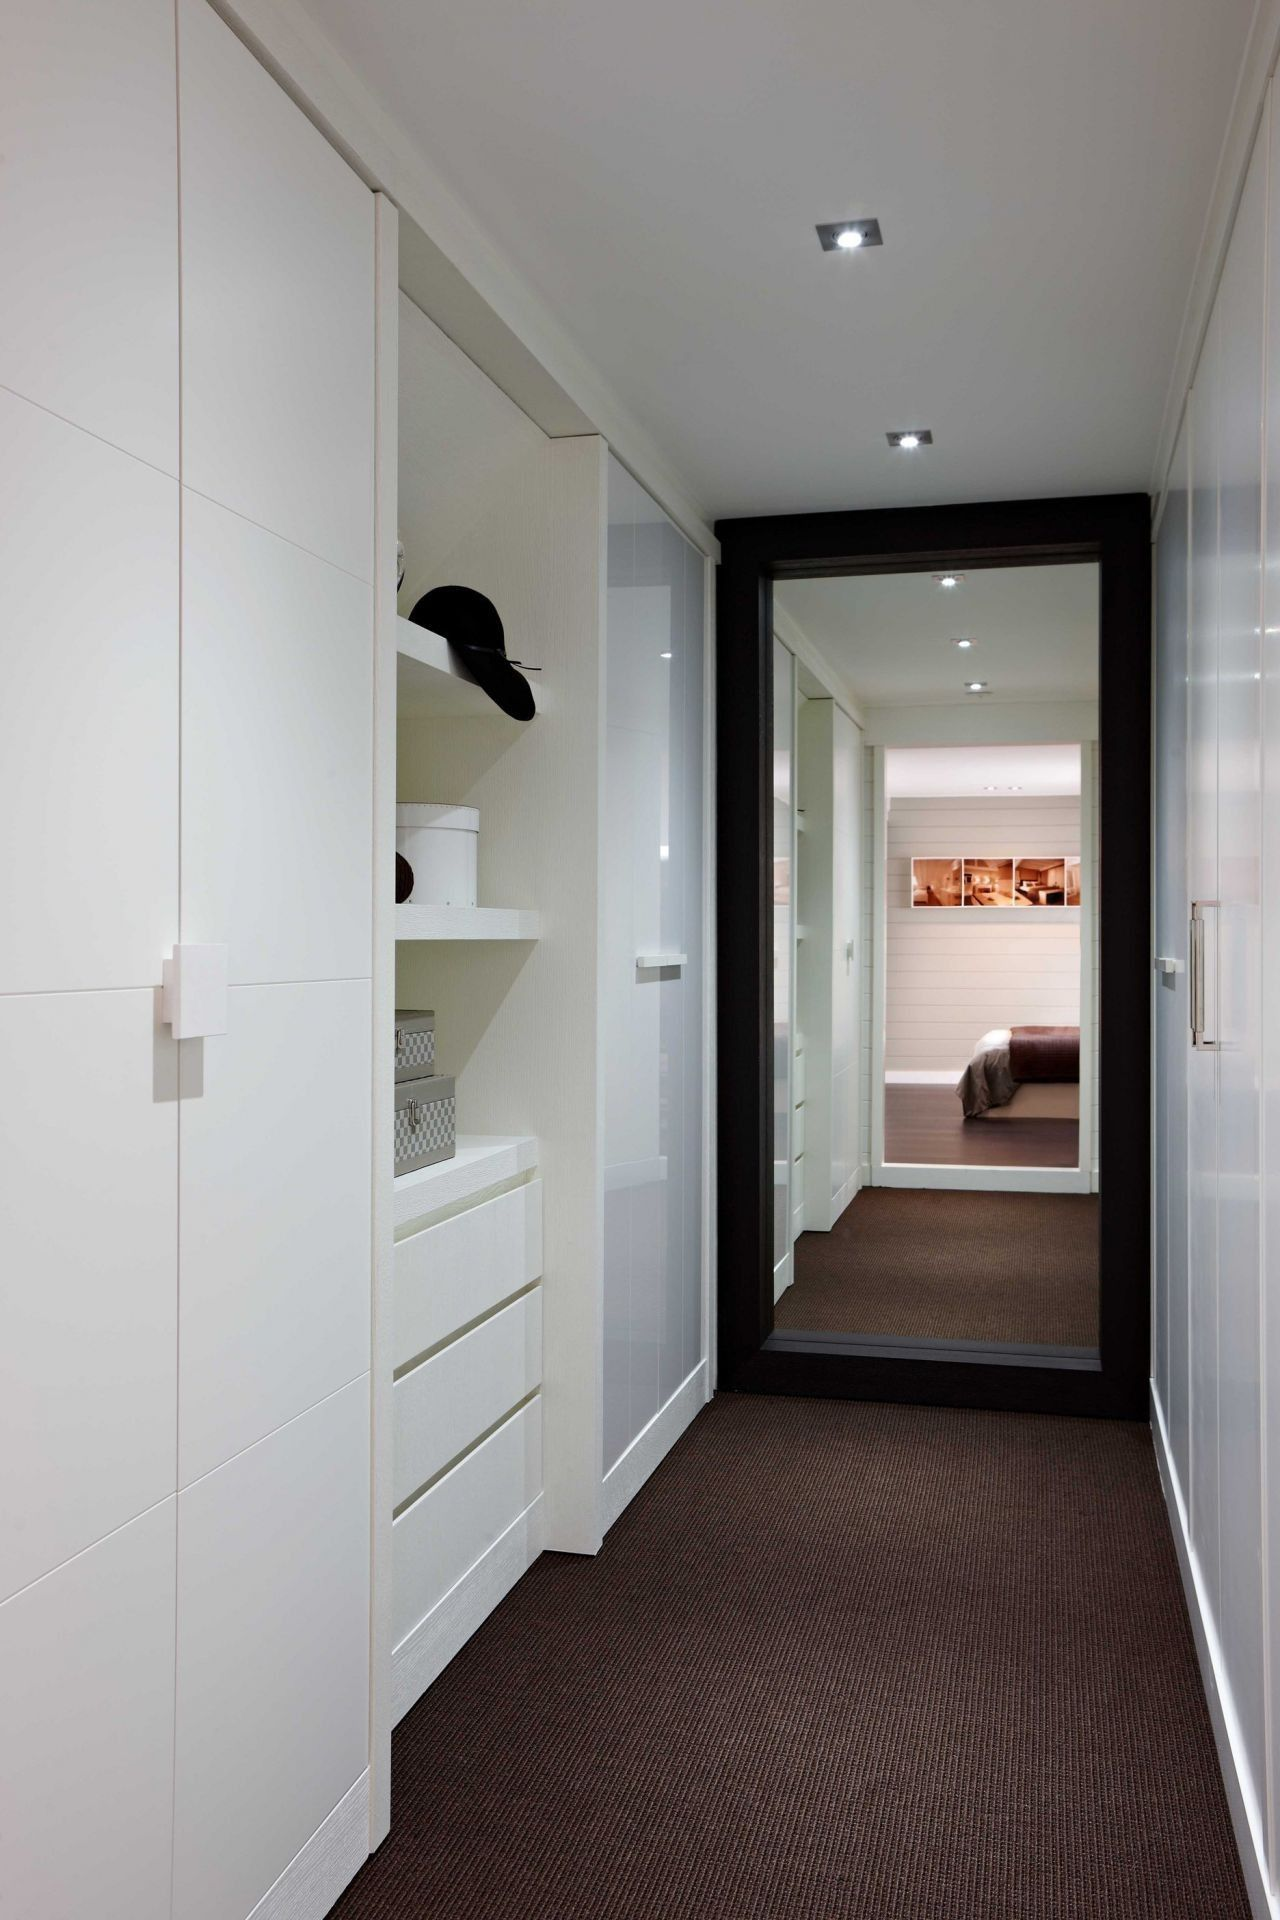 Glass door mi casa kijkwoningen waregem interieur mi casa decoraci casa pinterest - Nice bedroom wardrobes ...